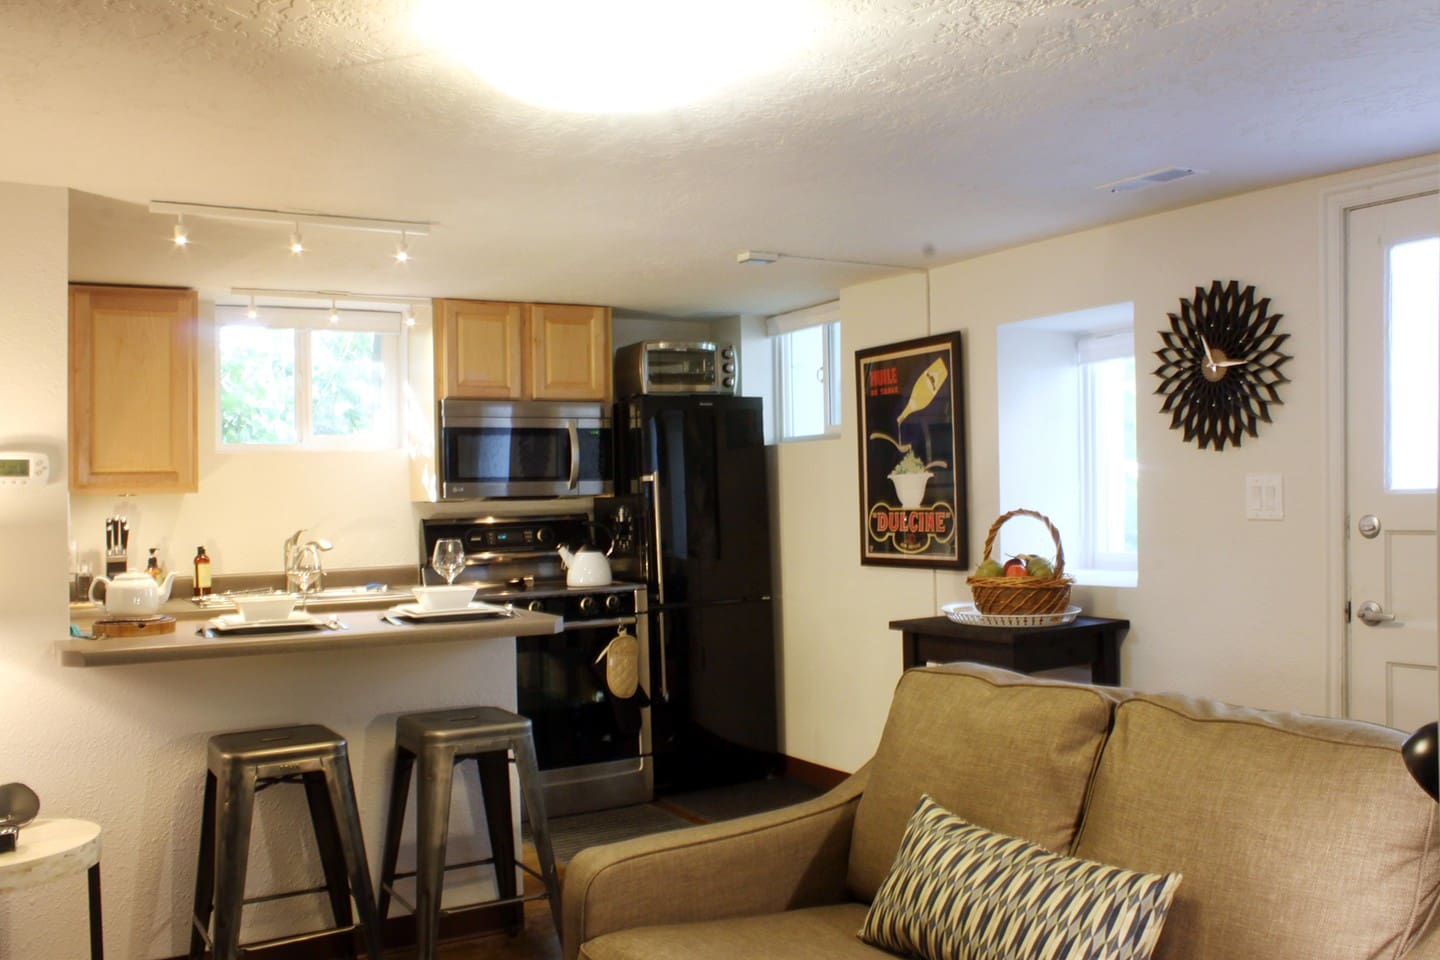 Kitchen has breakfast bar counter seating, Bosch stove, new microwave, and Bloomberg refrigerator (freezer on bottom).